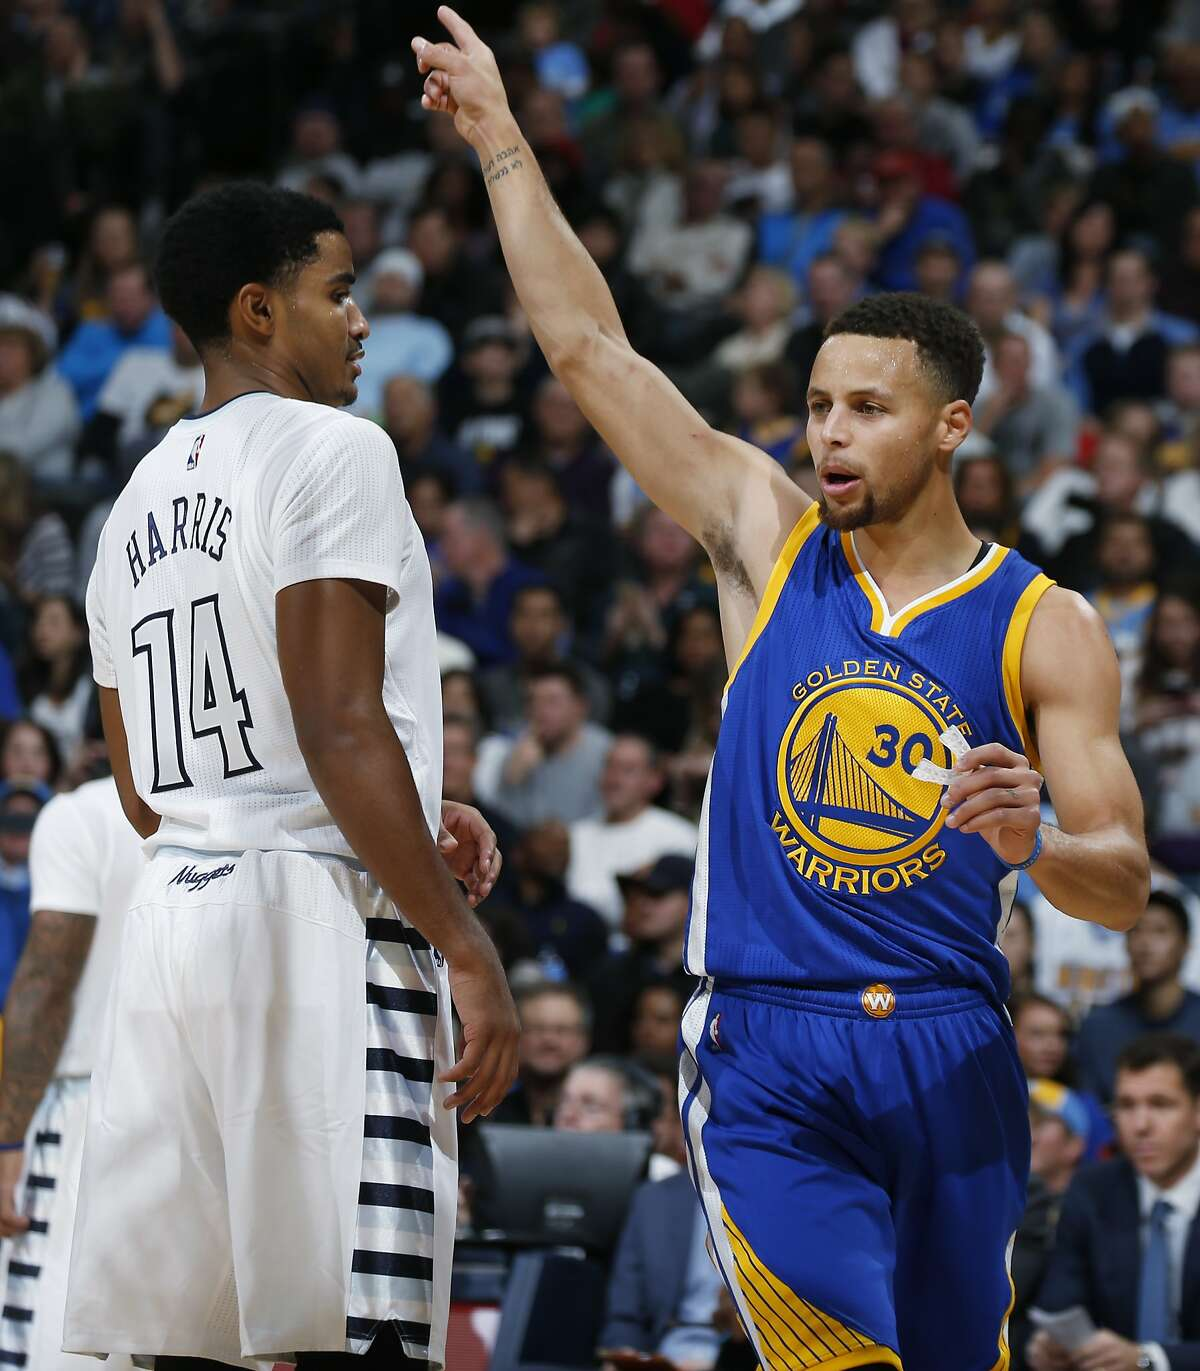 Golden State Warriors guard Stephen Curry, right, gestures after a Warriors basket as Denver Nuggets guard Gary Harris looks on in the first half of an NBA basketball game Sunday, Nov. 22, 2015, in Denver.